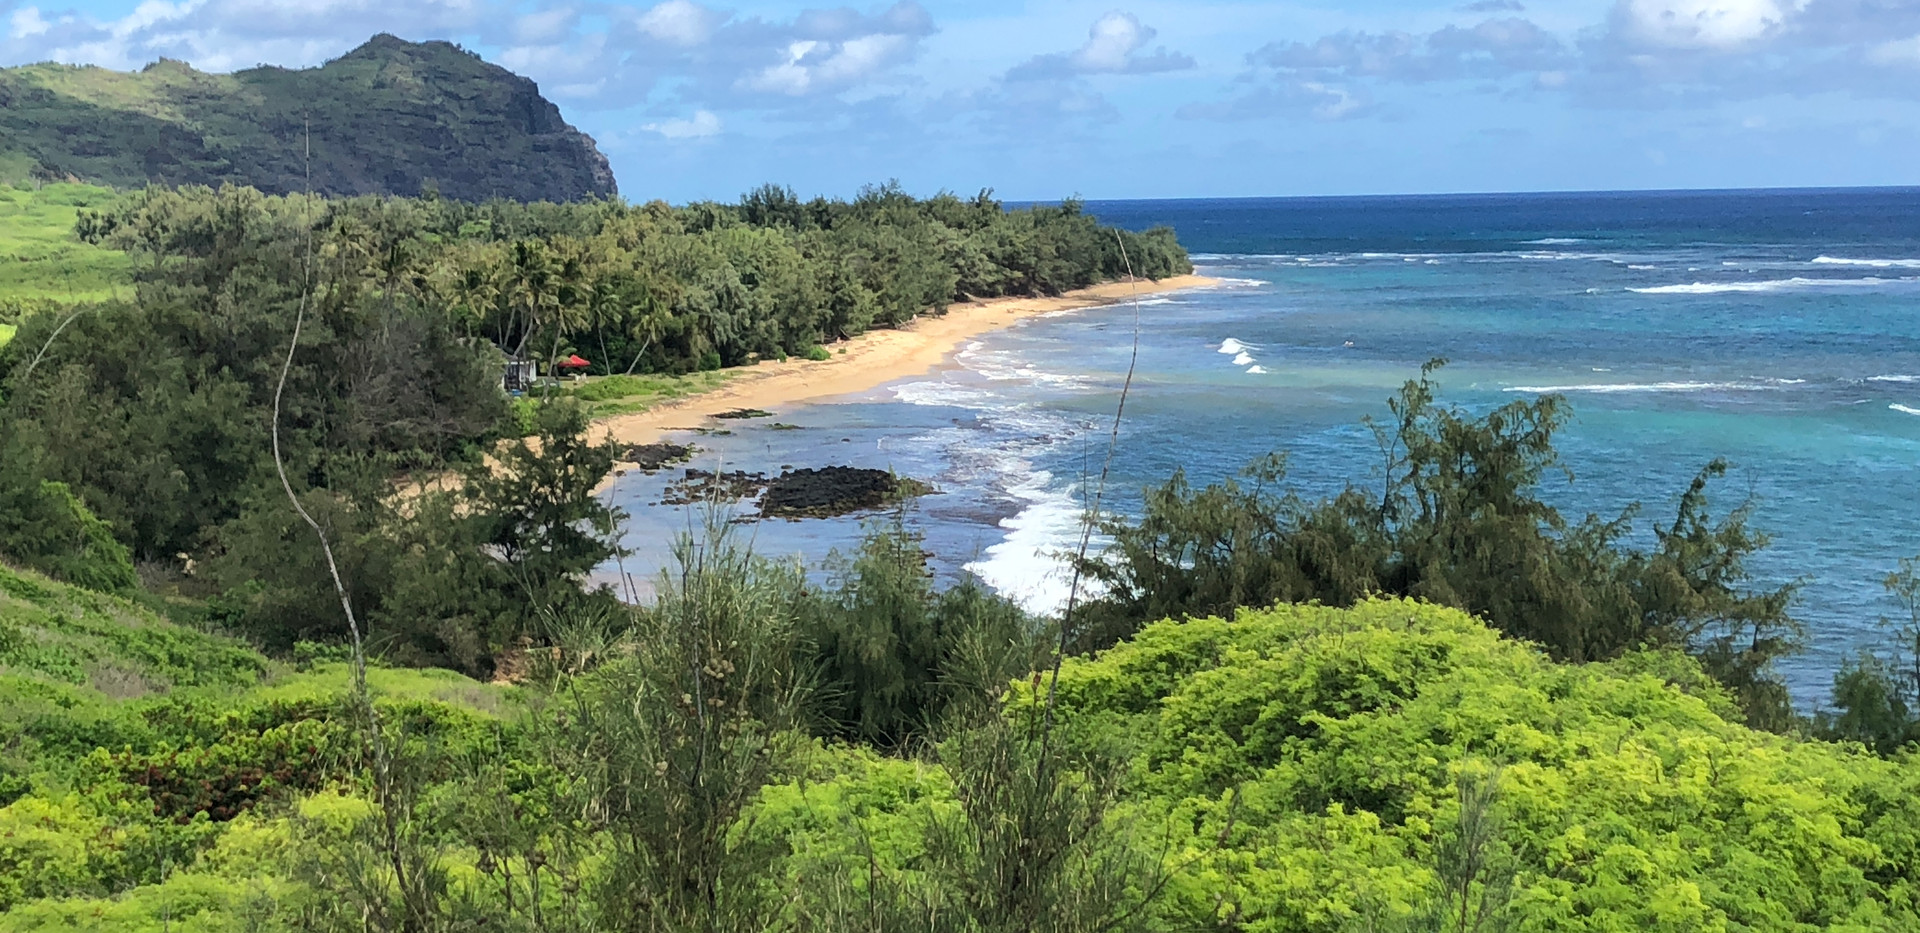 Remote Beach south of Kipu Kai